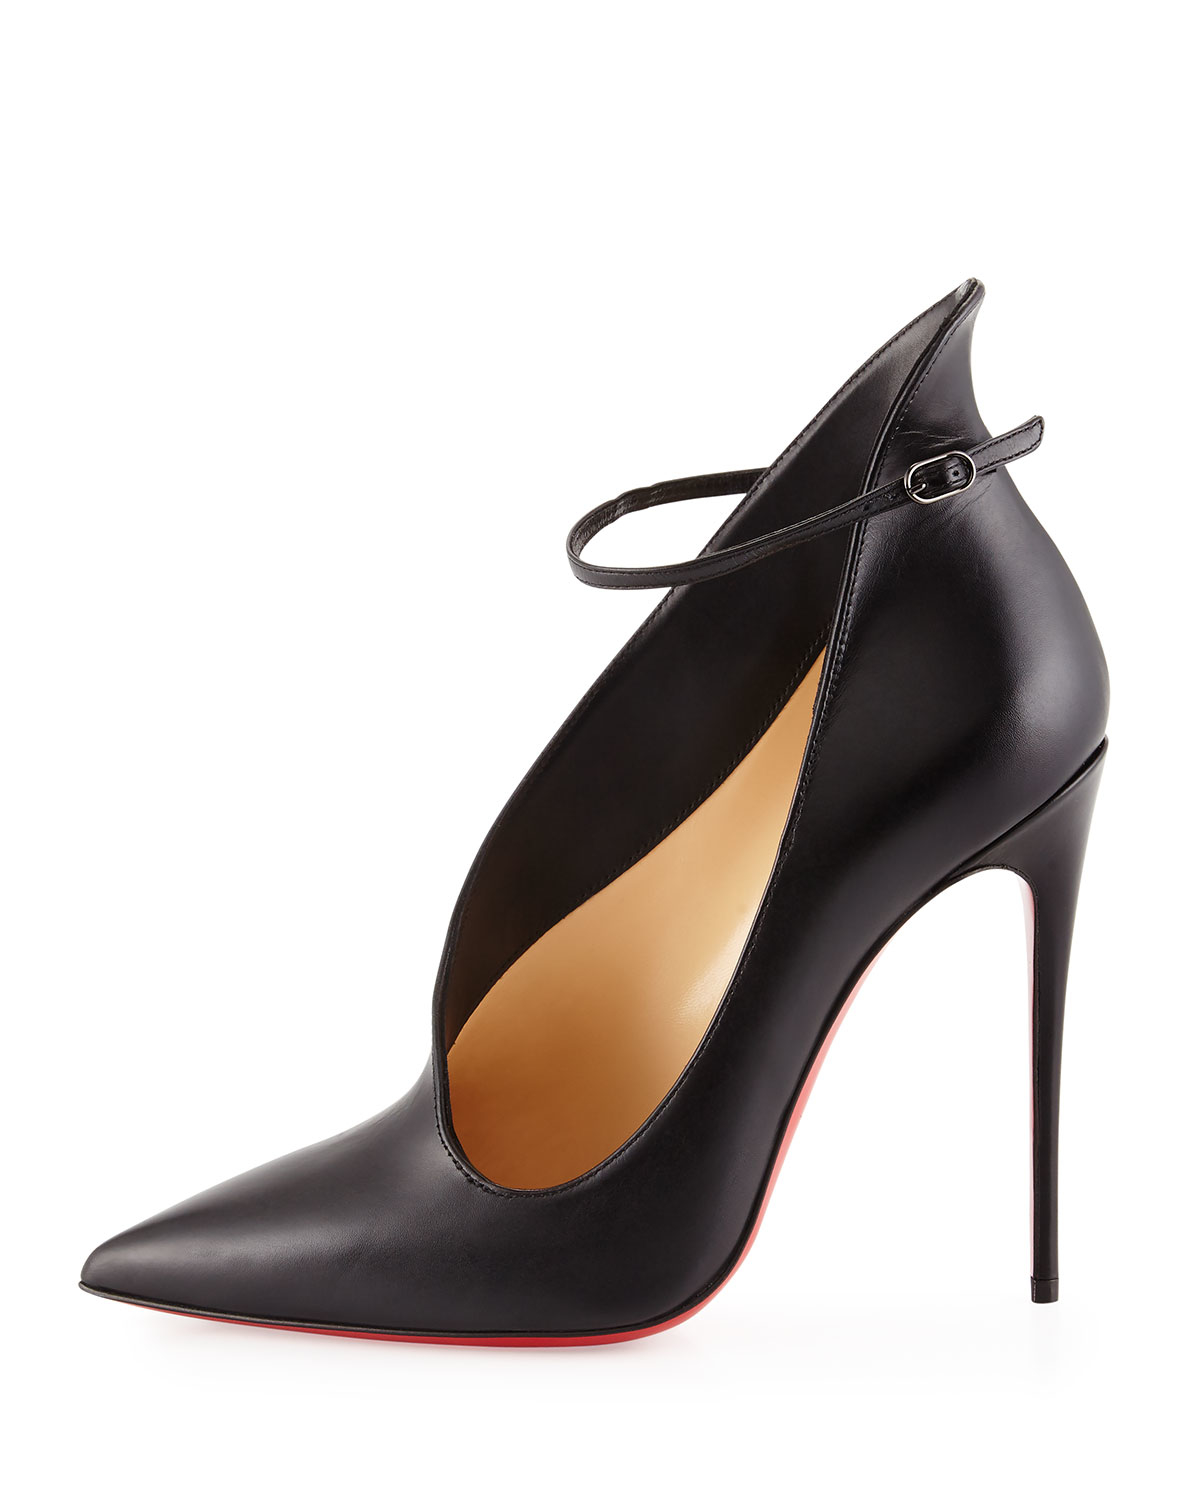 size 40 73ea3 2c4d0 free shipping louboutin black pumps red sole pump 76a41 3e607